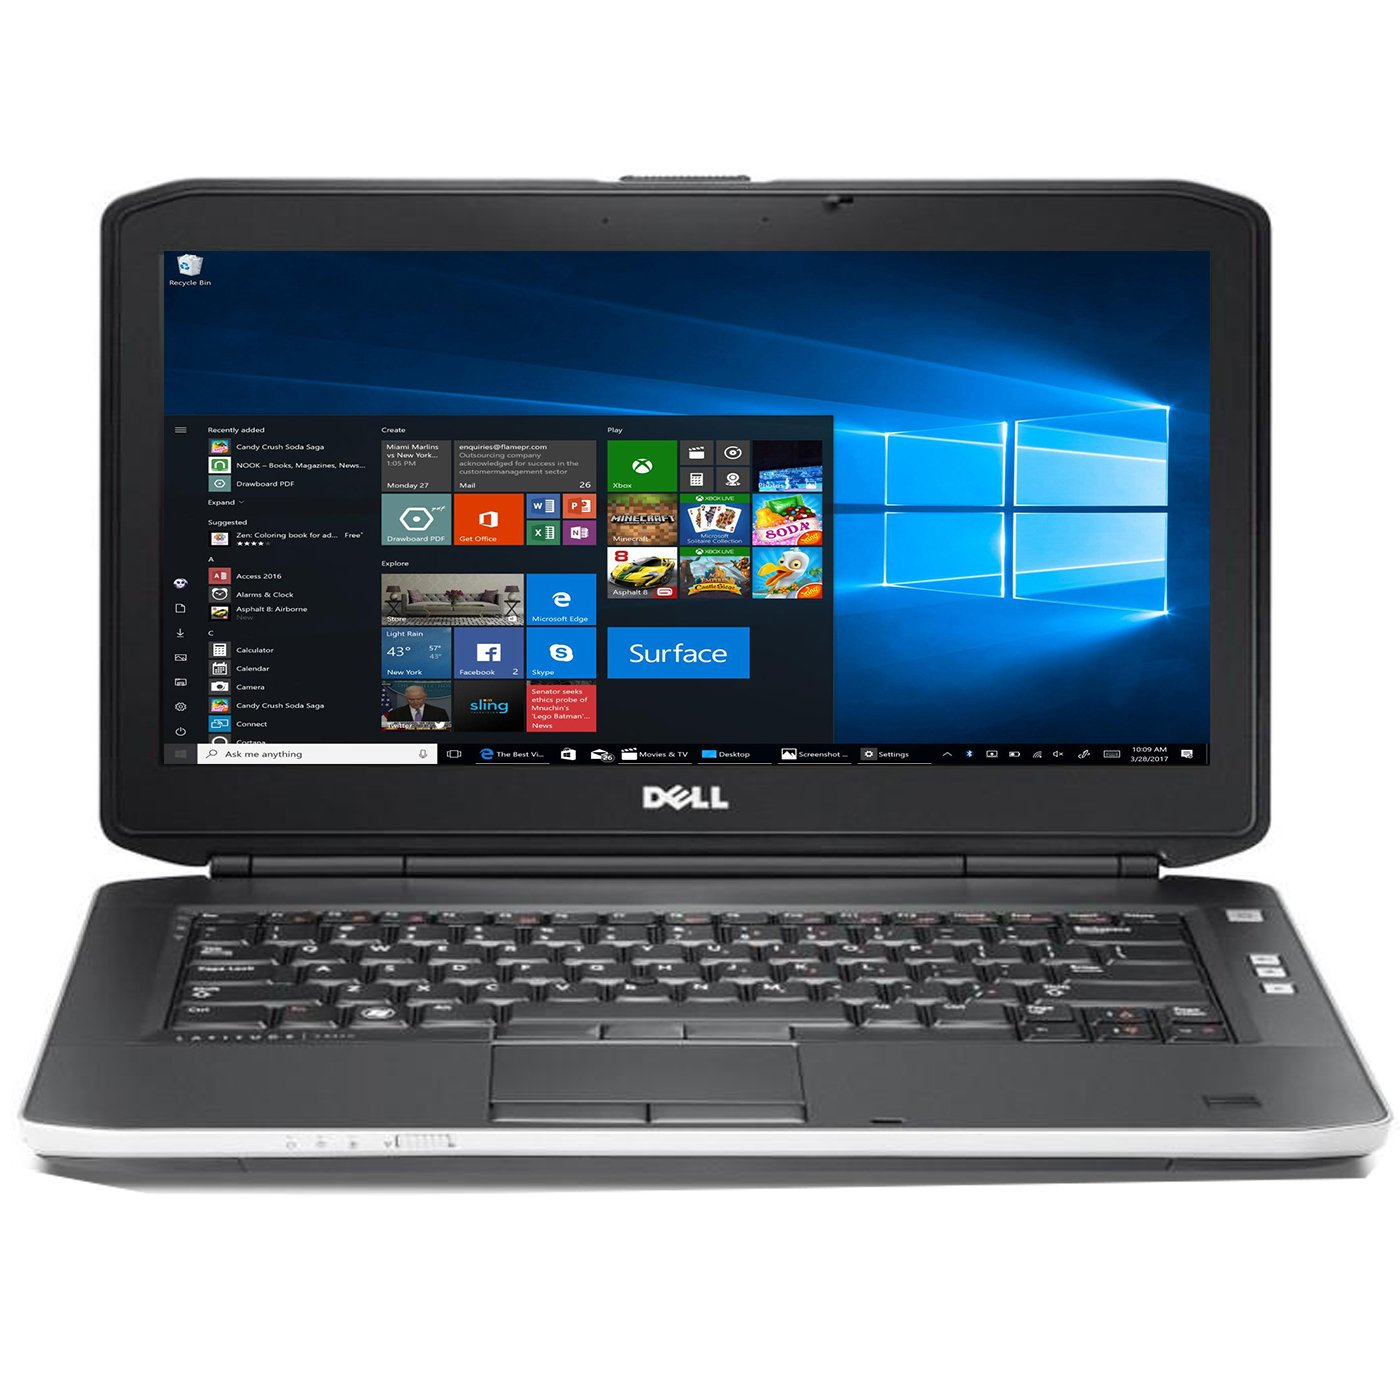 Dell E5430 Notebook Computer Refurbished Renewed